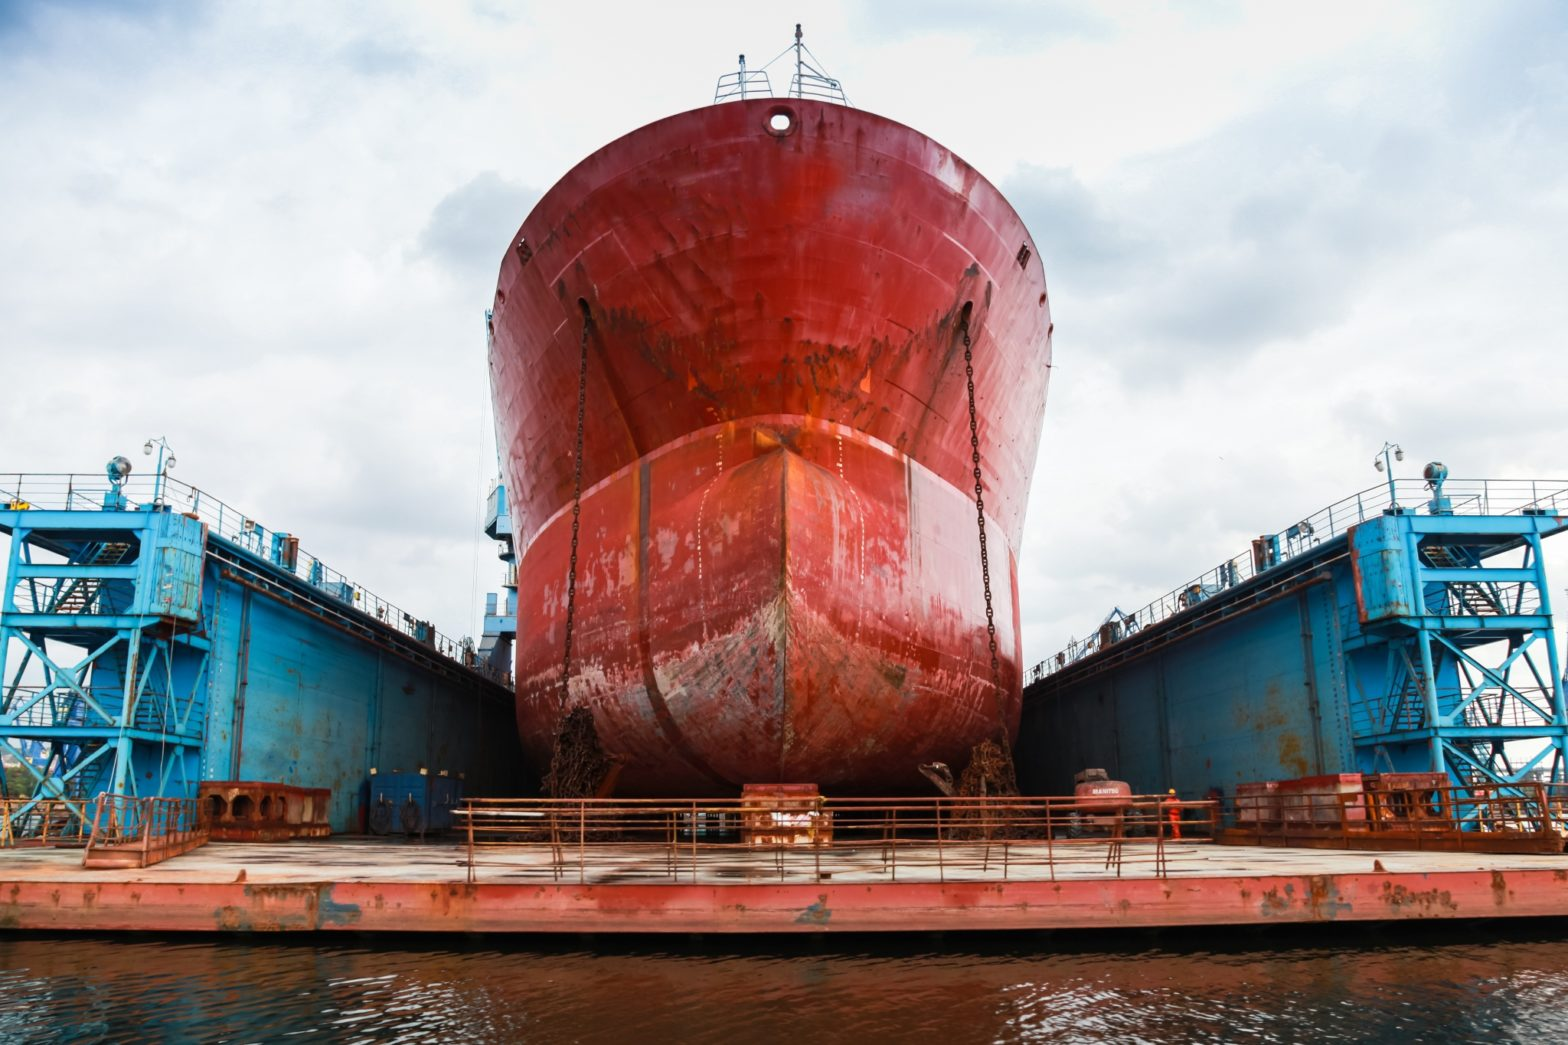 A large red tanker ship docked for repair at a shipyard.